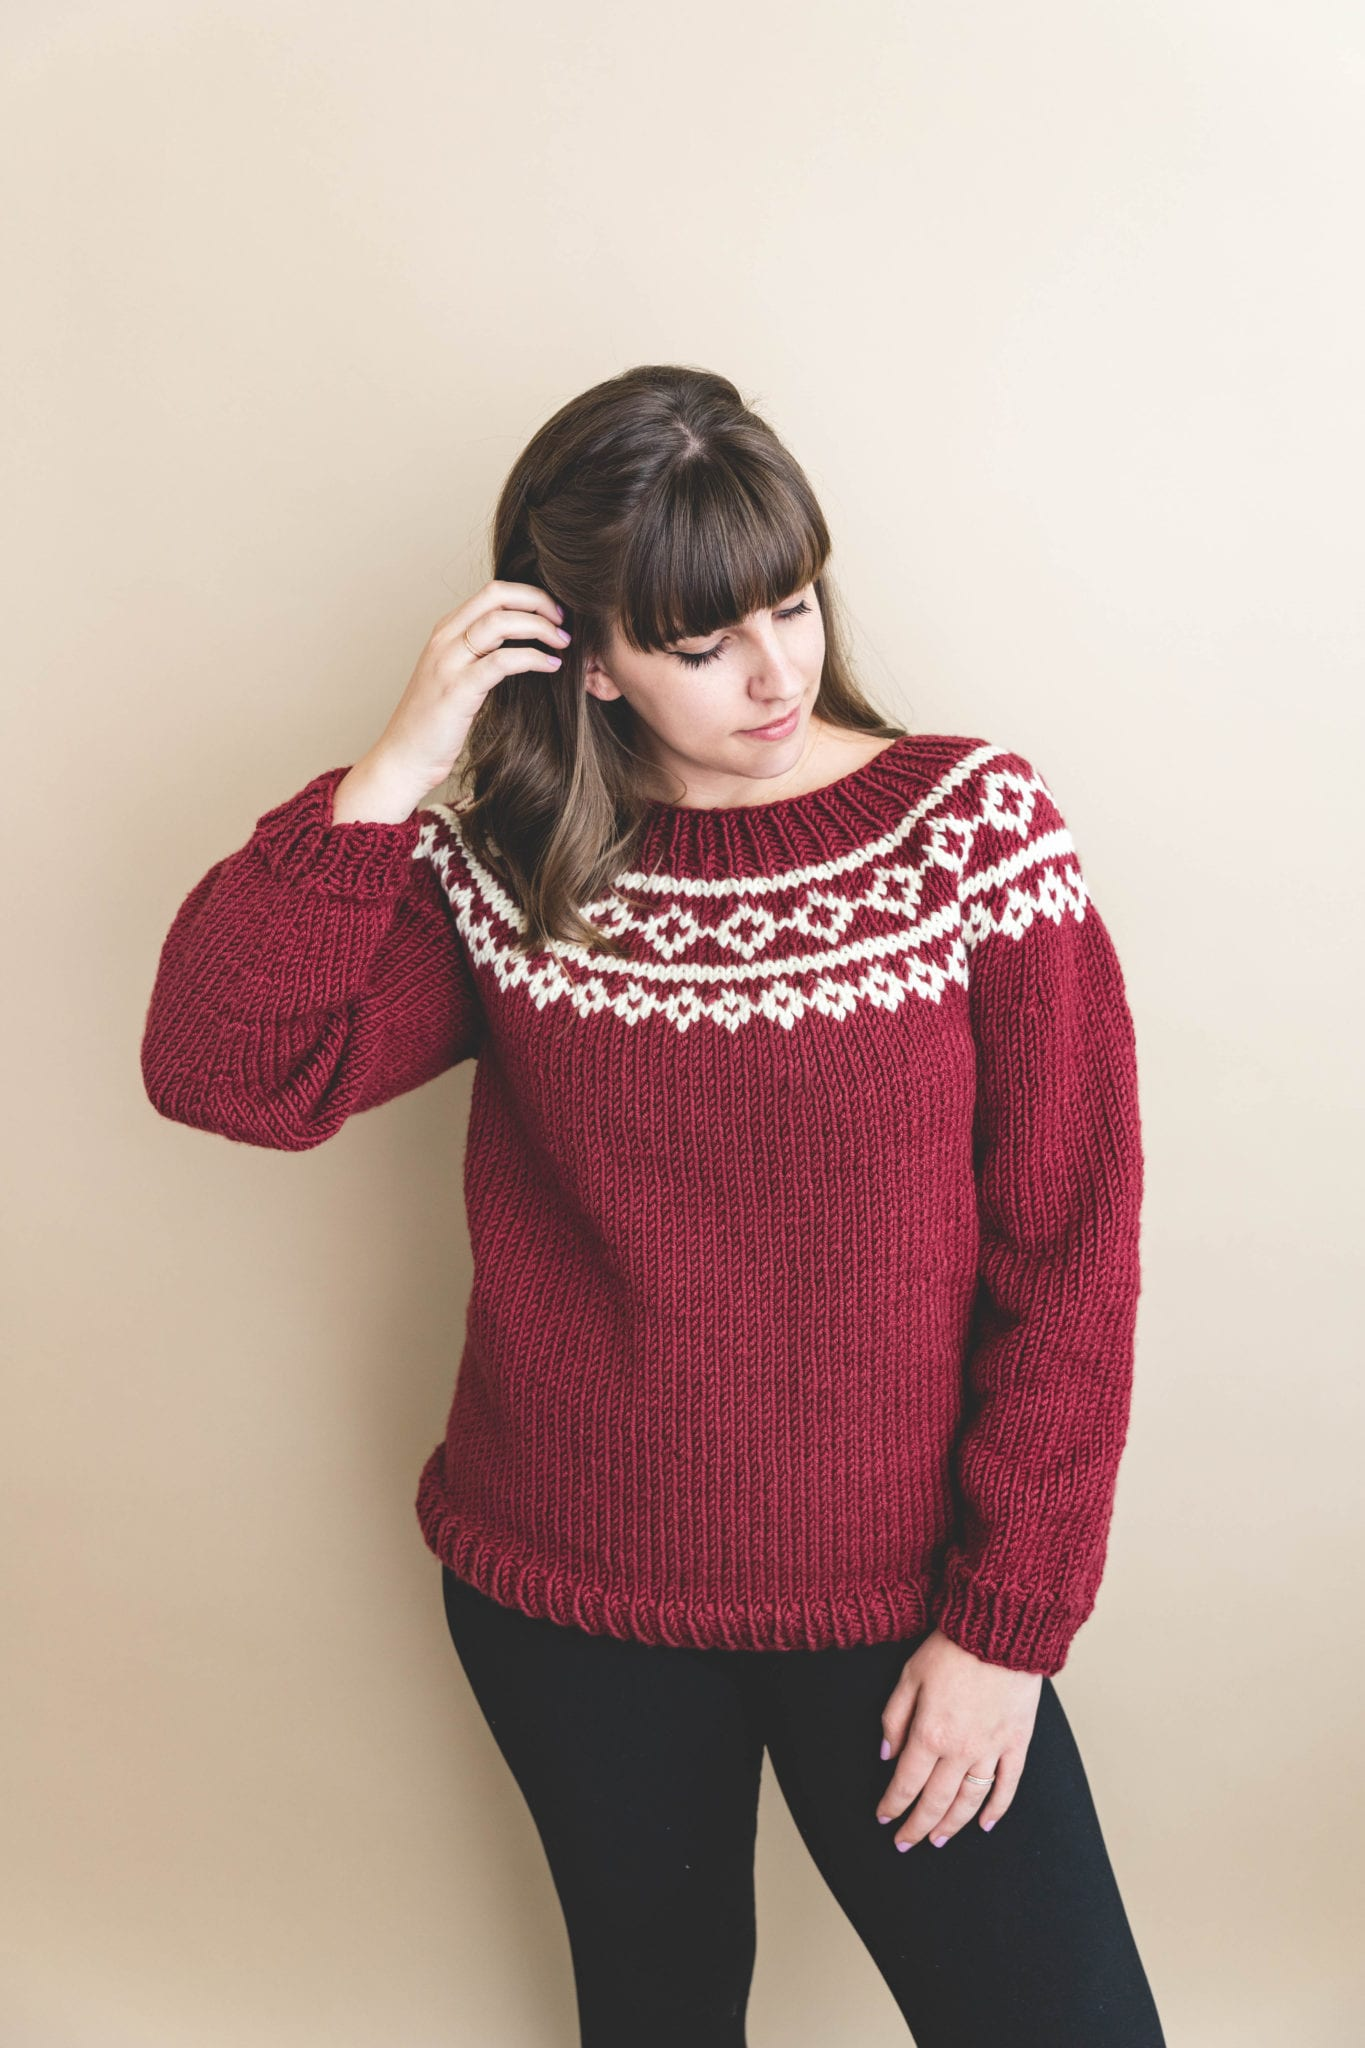 40fb4d41138a8 My First Holiday Knit Sweater! - Sewrella